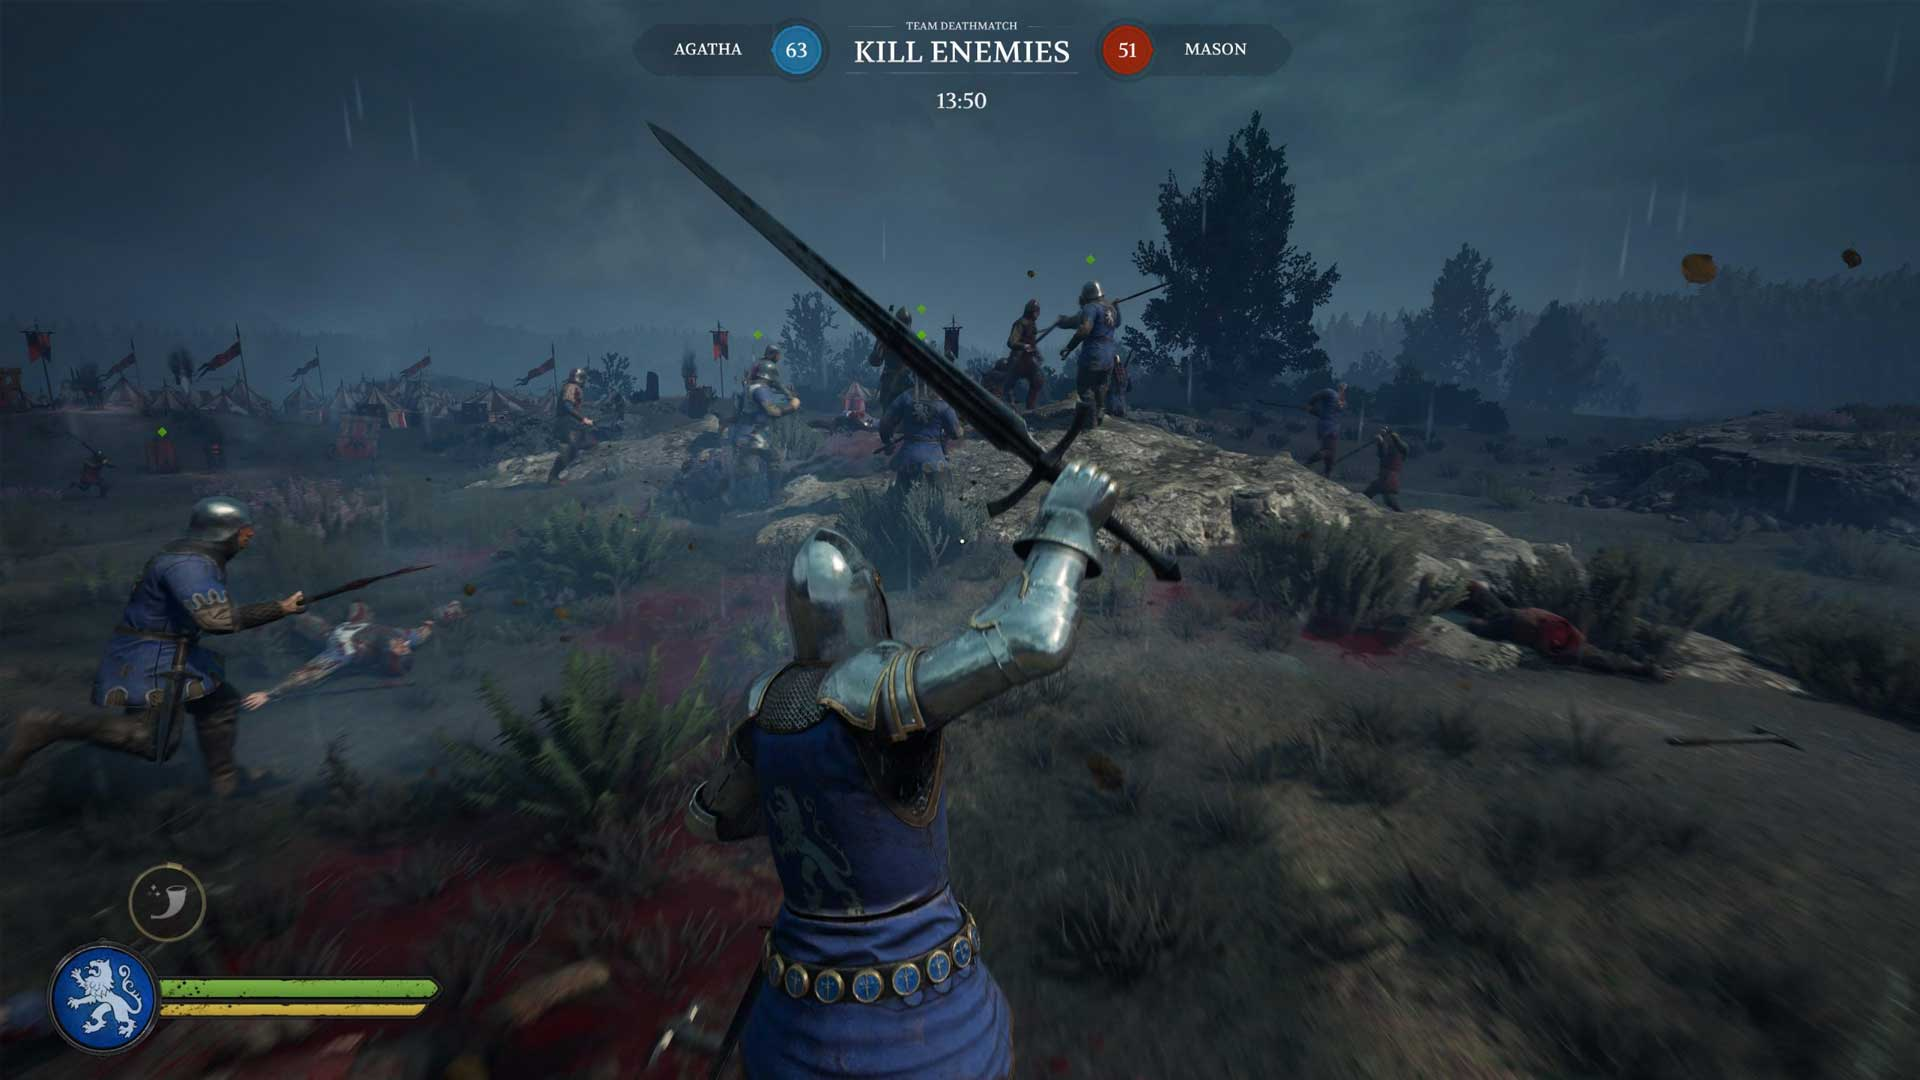 chevalier-classe-chivalry-2-clicks-and-games